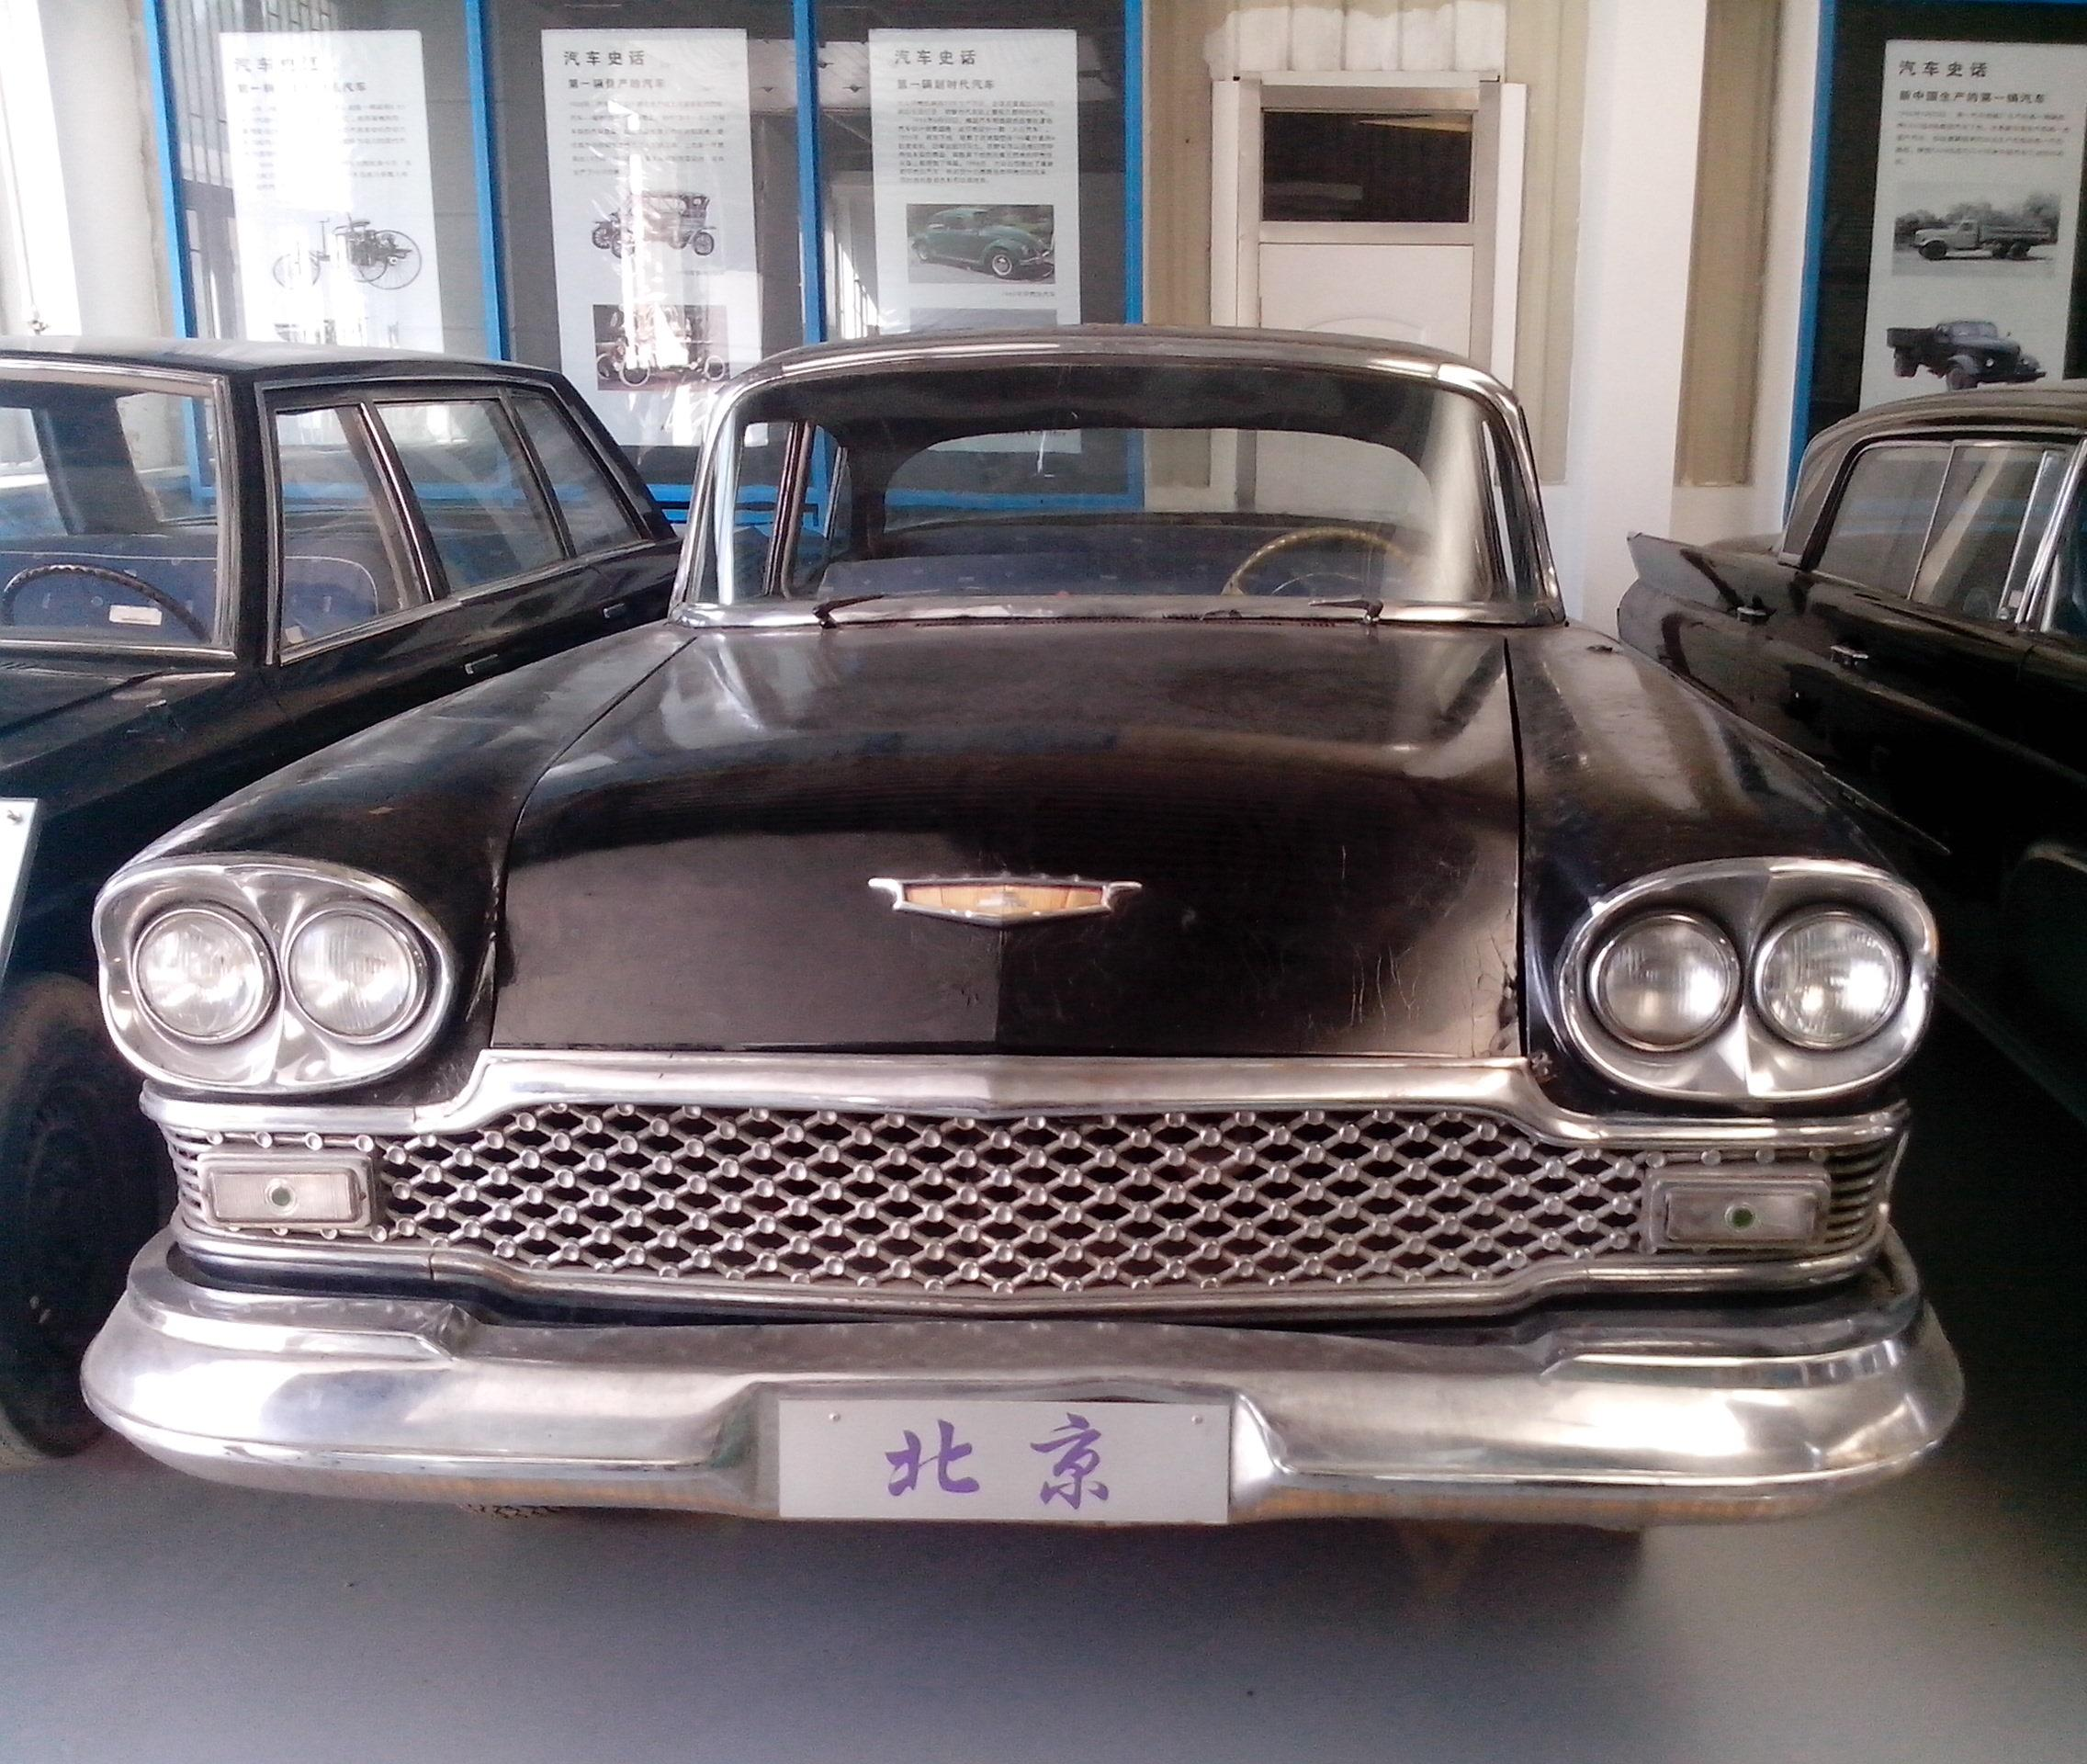 File:1960 Beijing luxury car.jpg - Wikimedia Commons